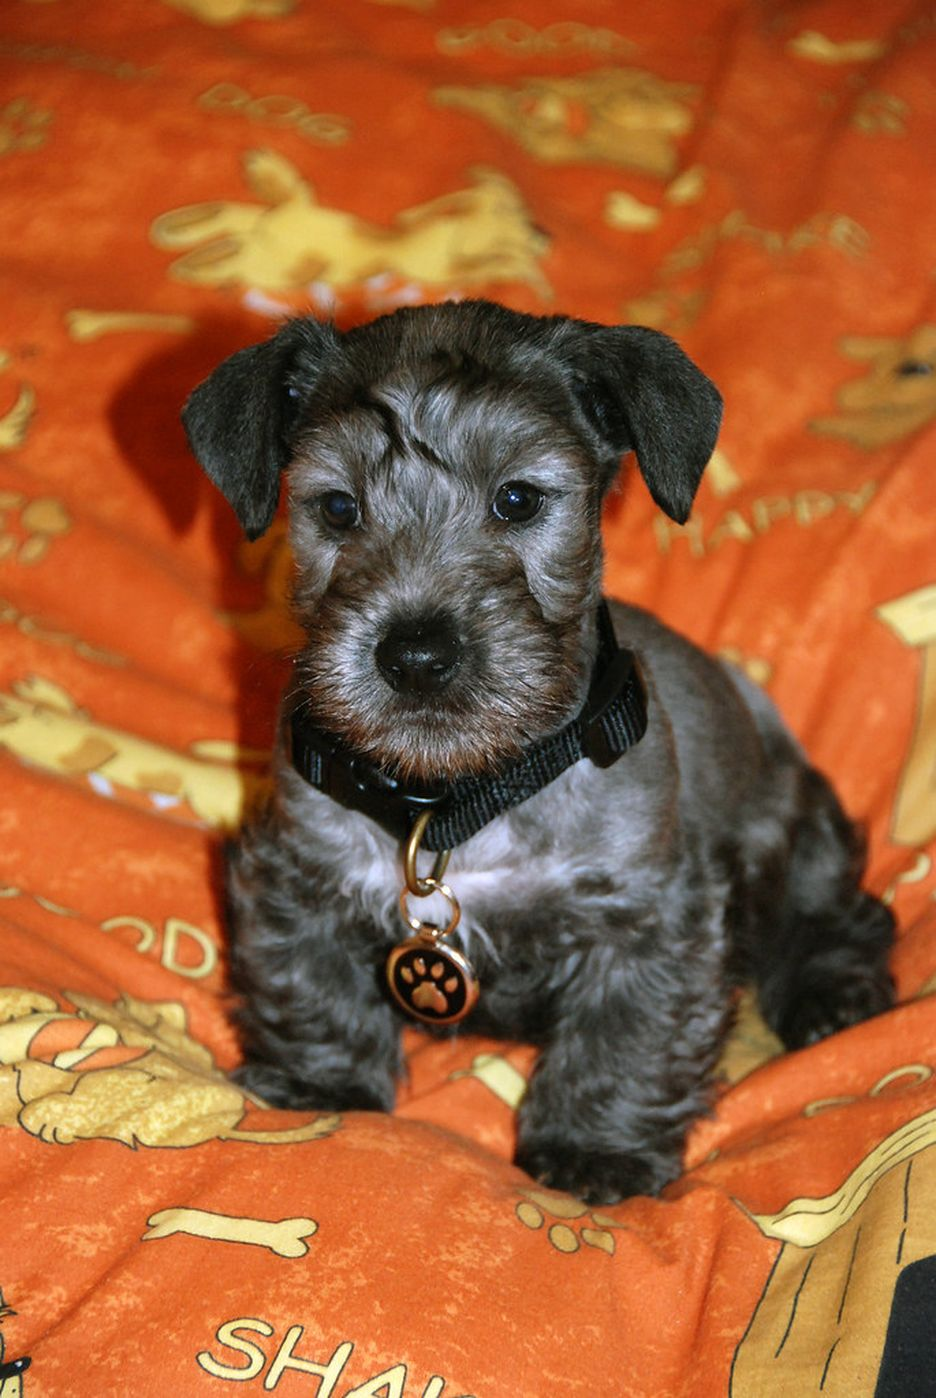 Secondary image of Cesky Terrier dog breed